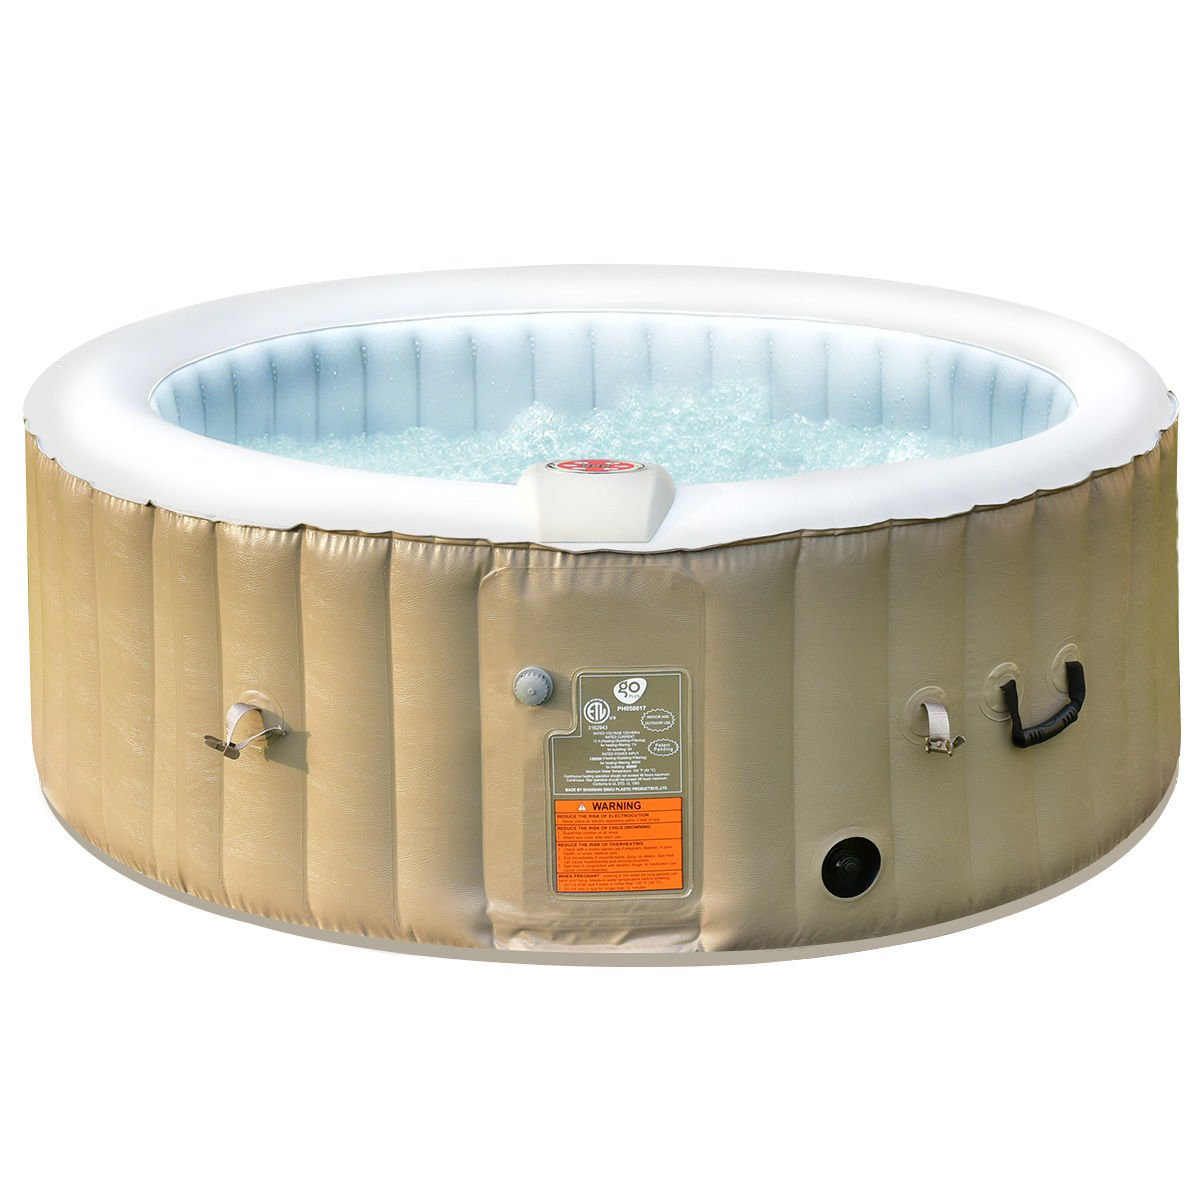 The Best Outdoor Hot Tubs For Your Garden: Reviews & Buying Guide 7